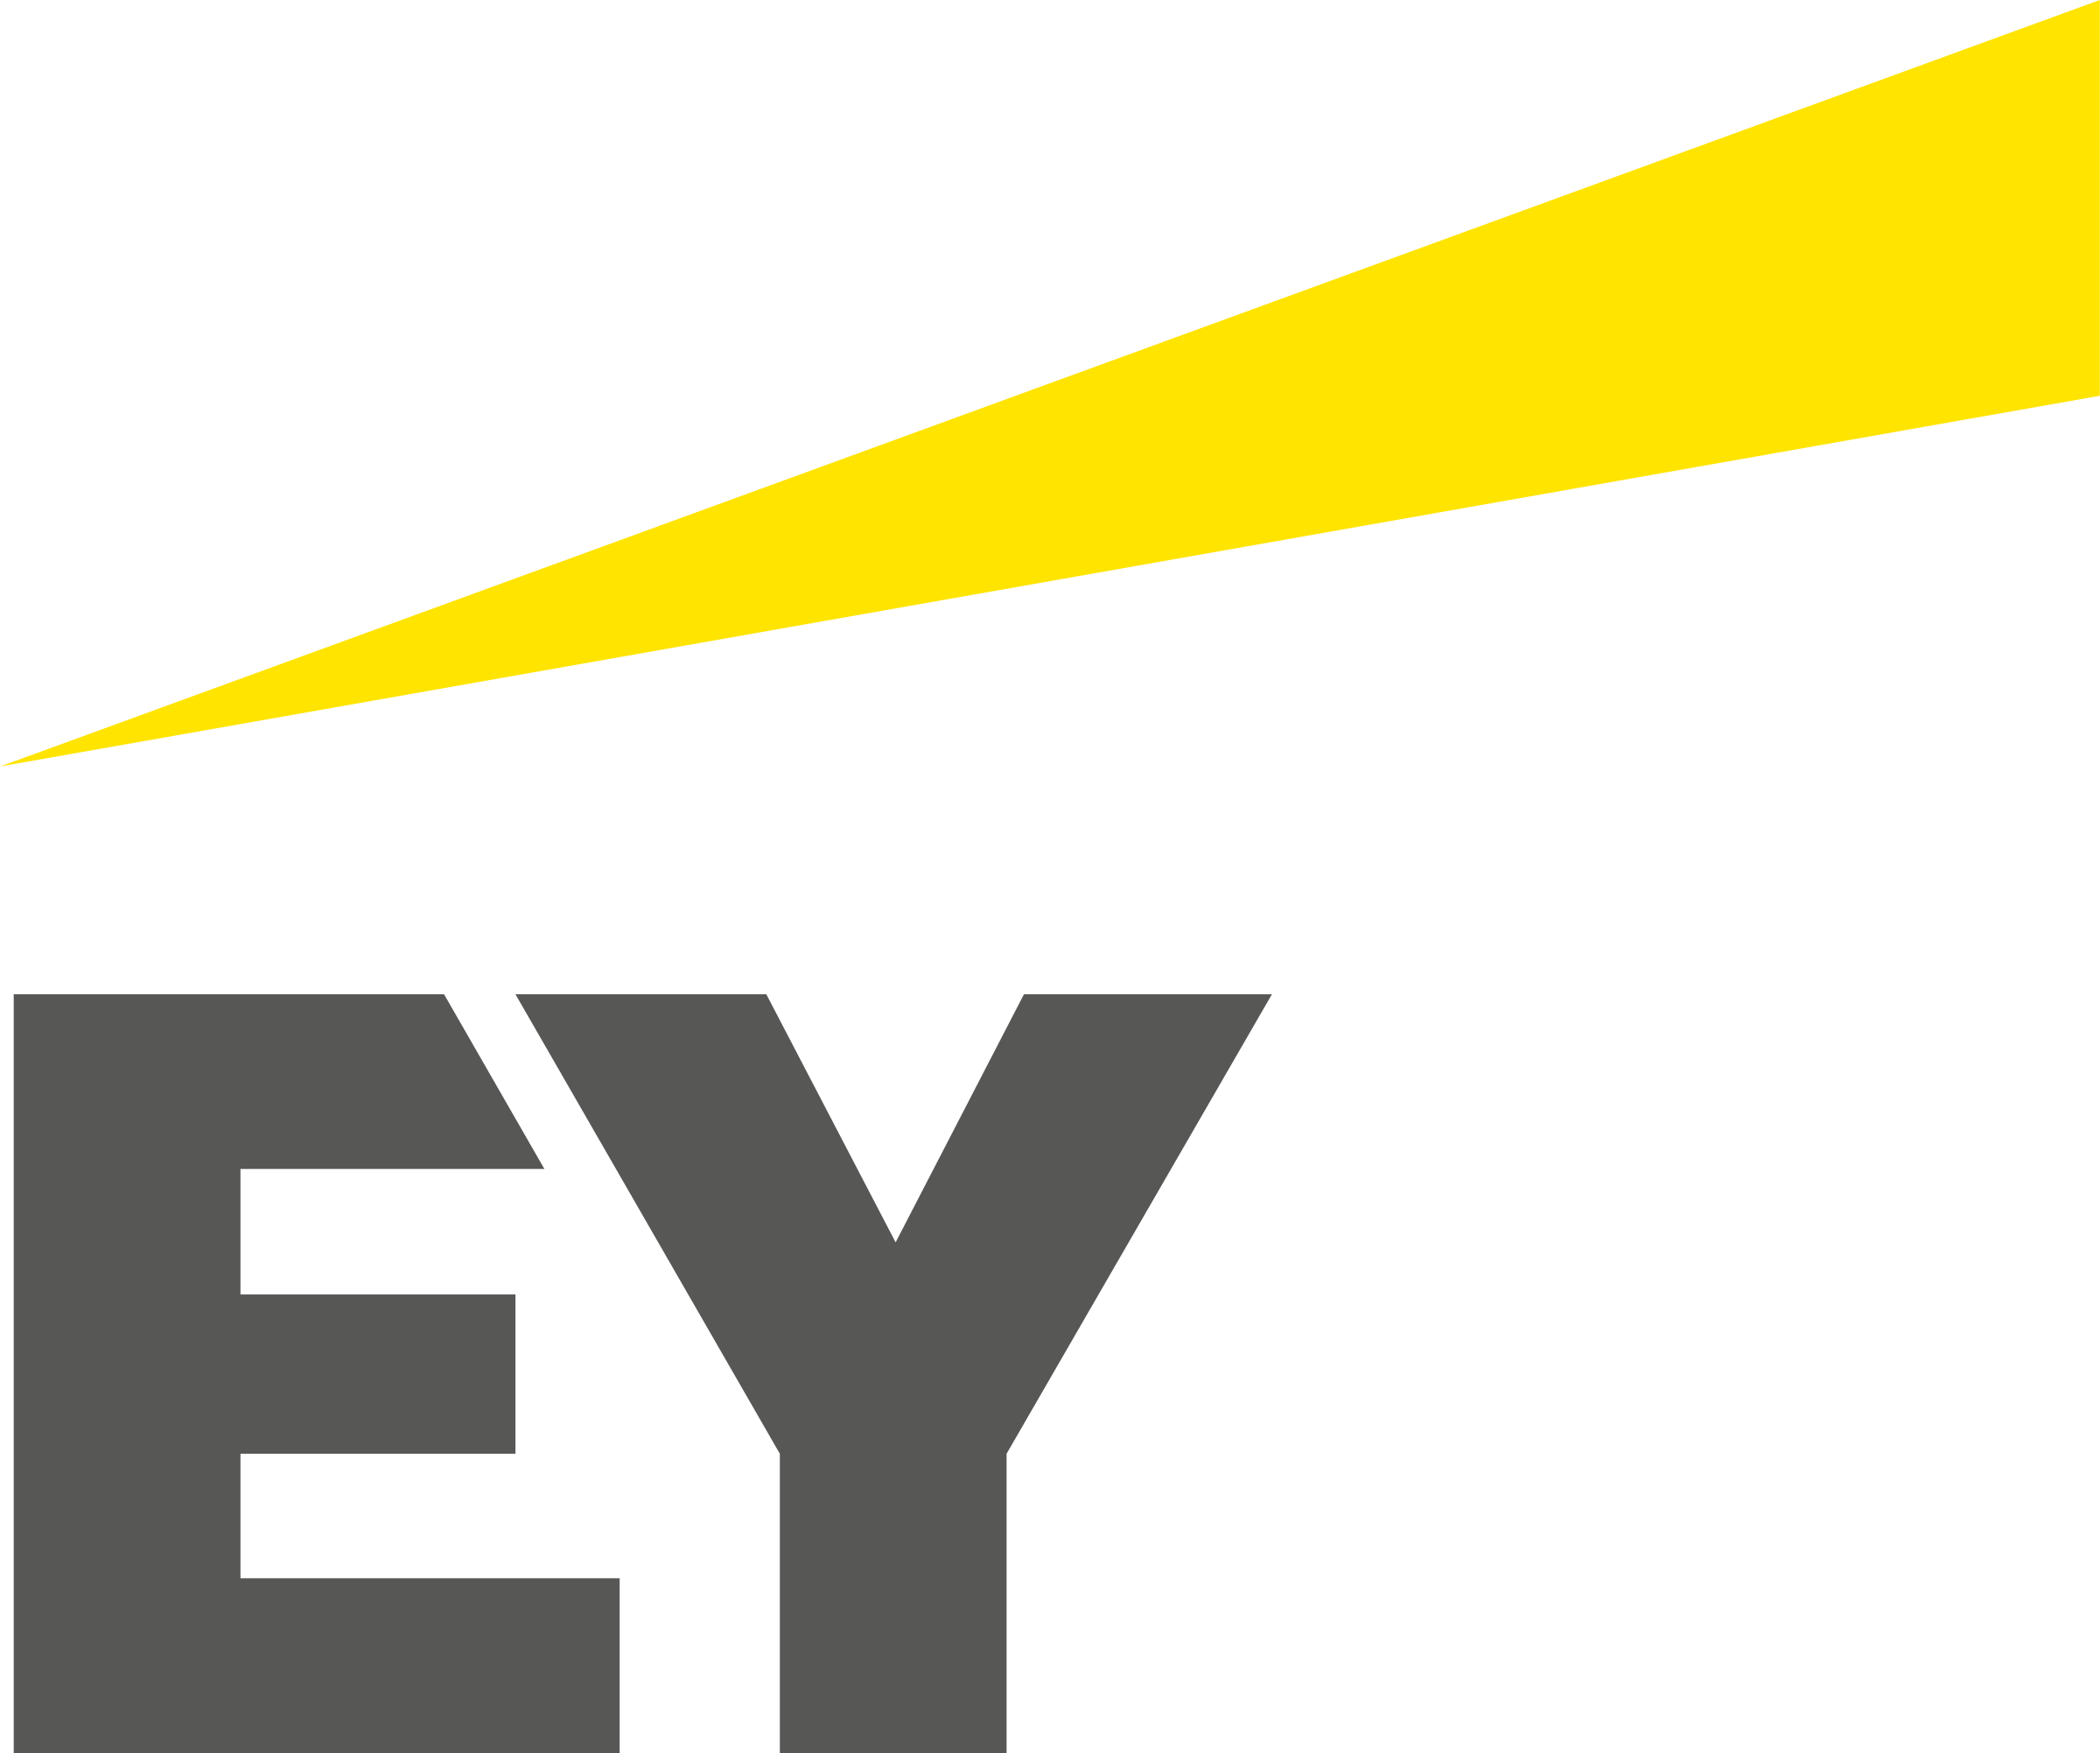 Ernst Young logo png bestand